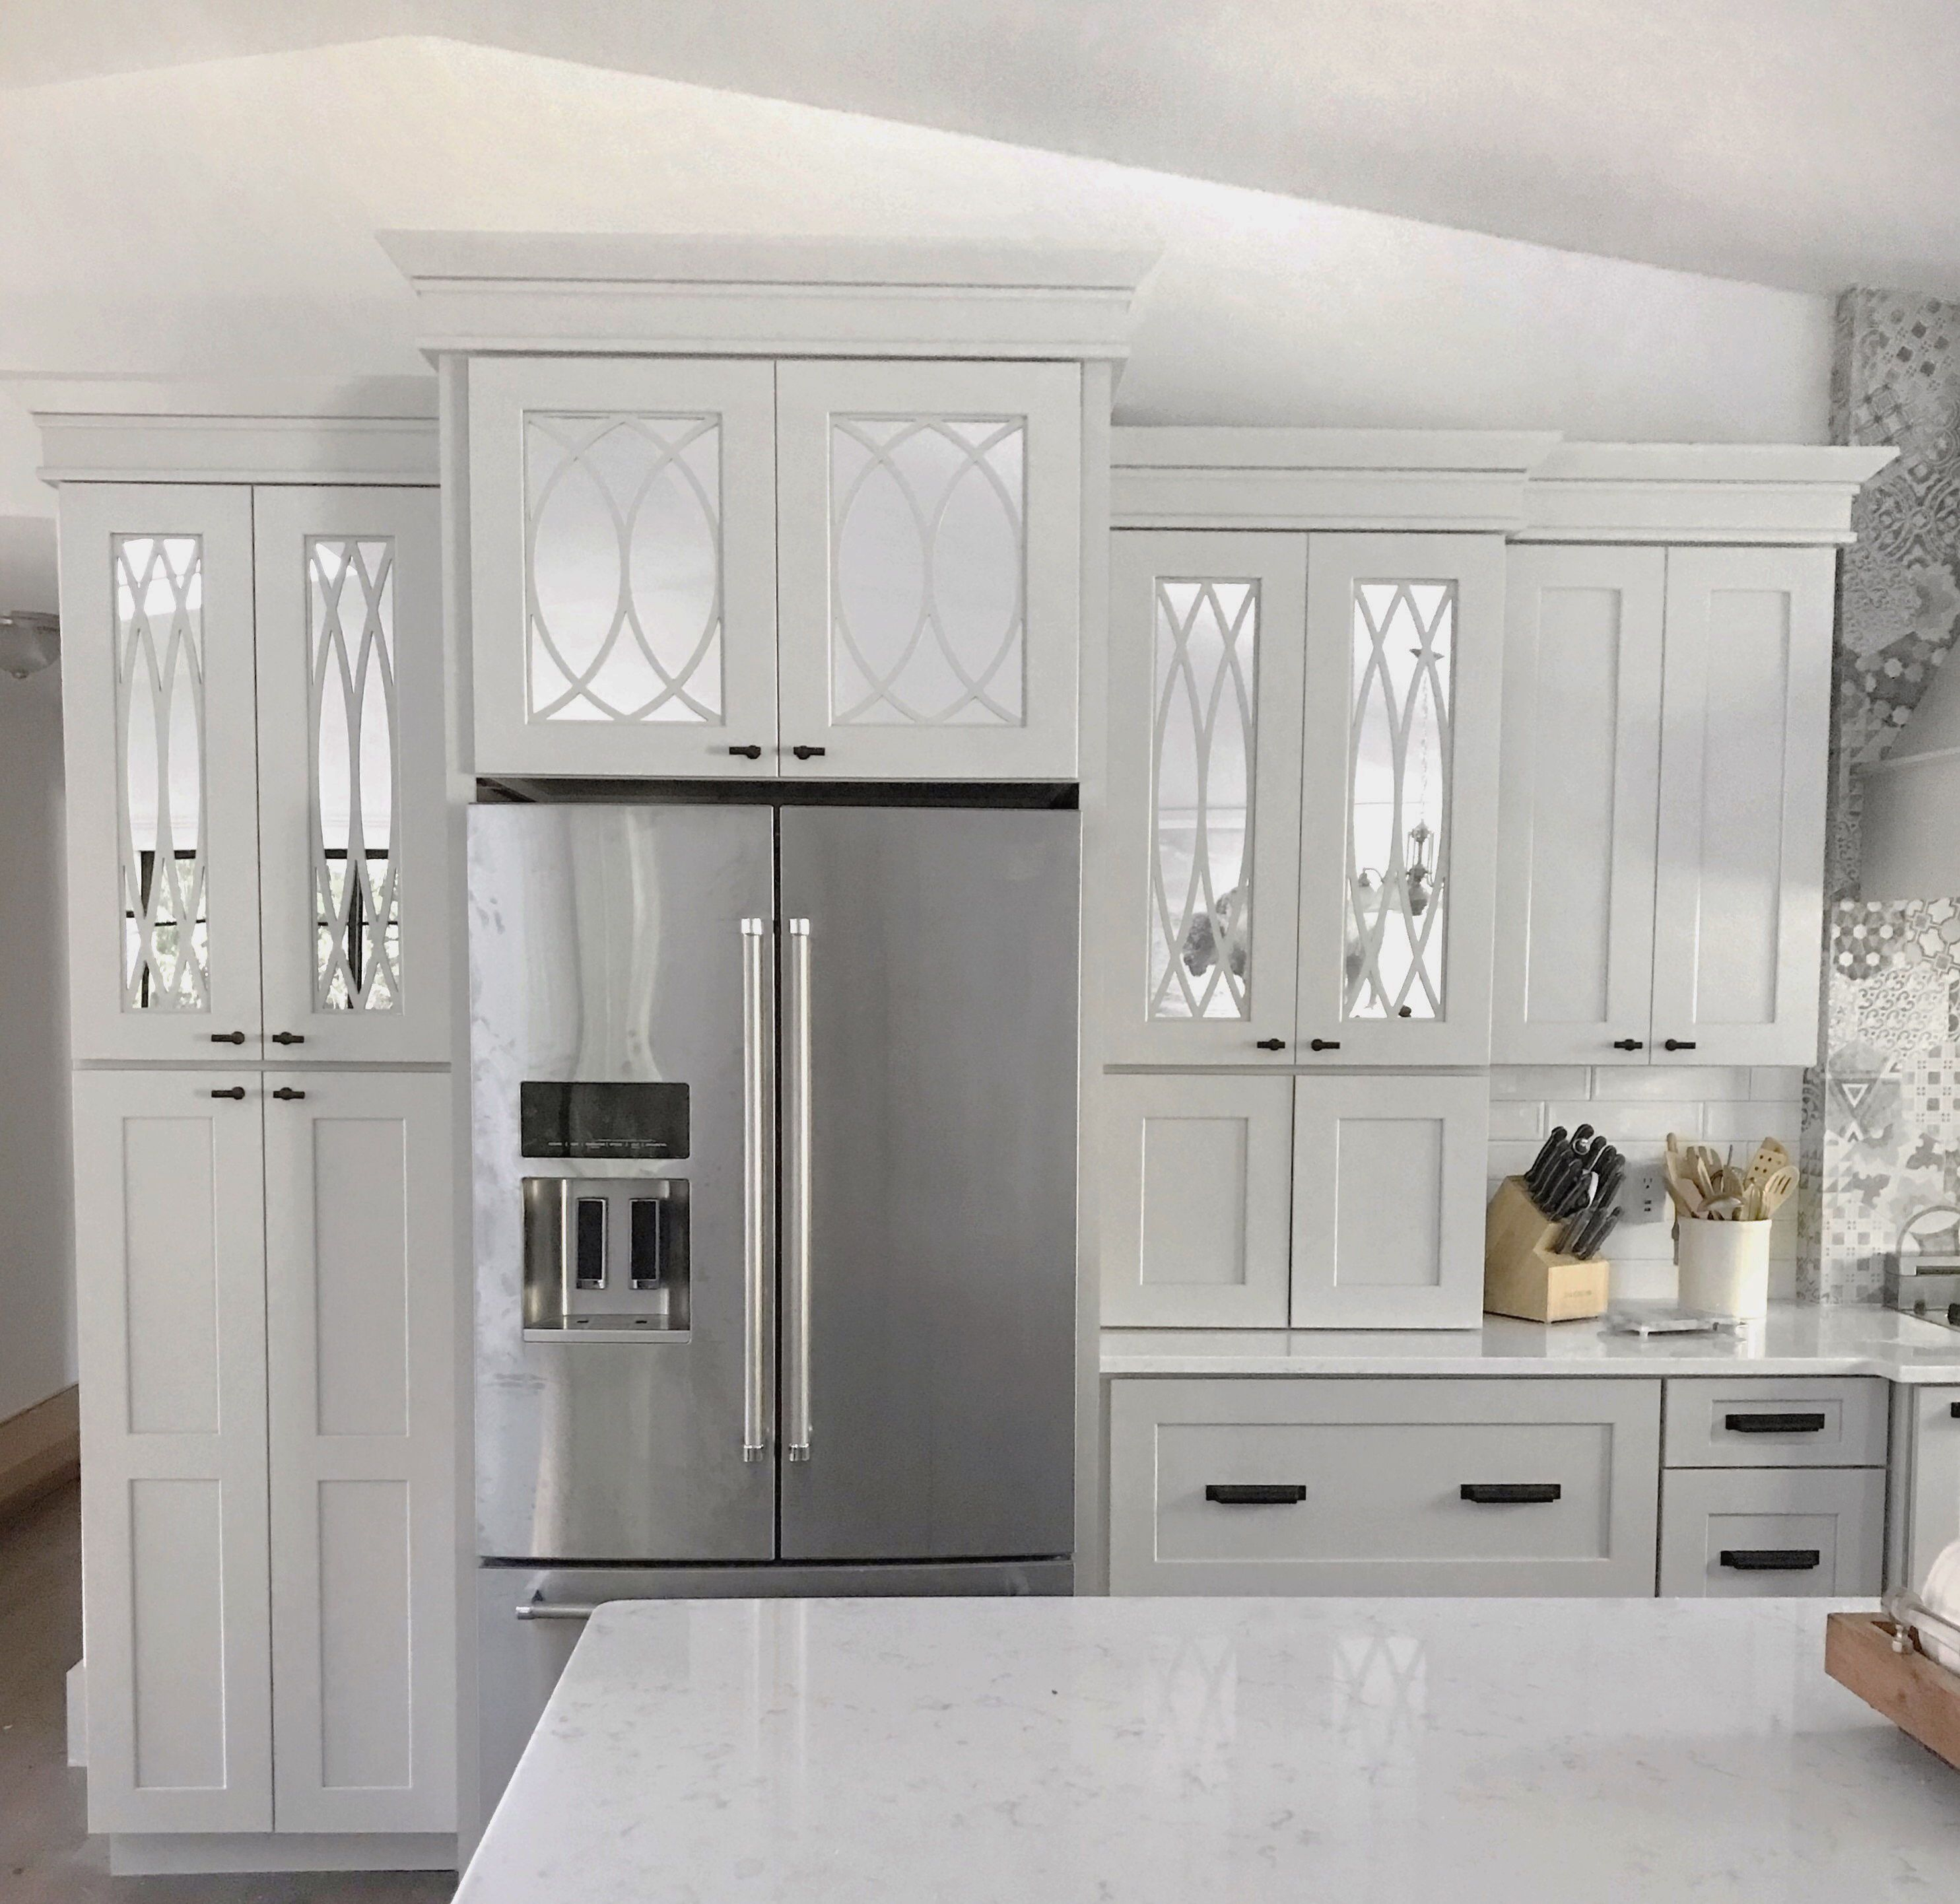 Upgrade Your Kitchen Cabinets And Bring In More Light Farmfreshcurls Used Mirror Inside The Door F Ikea Furniture Makeover Furniture Makeover Furniture Decor